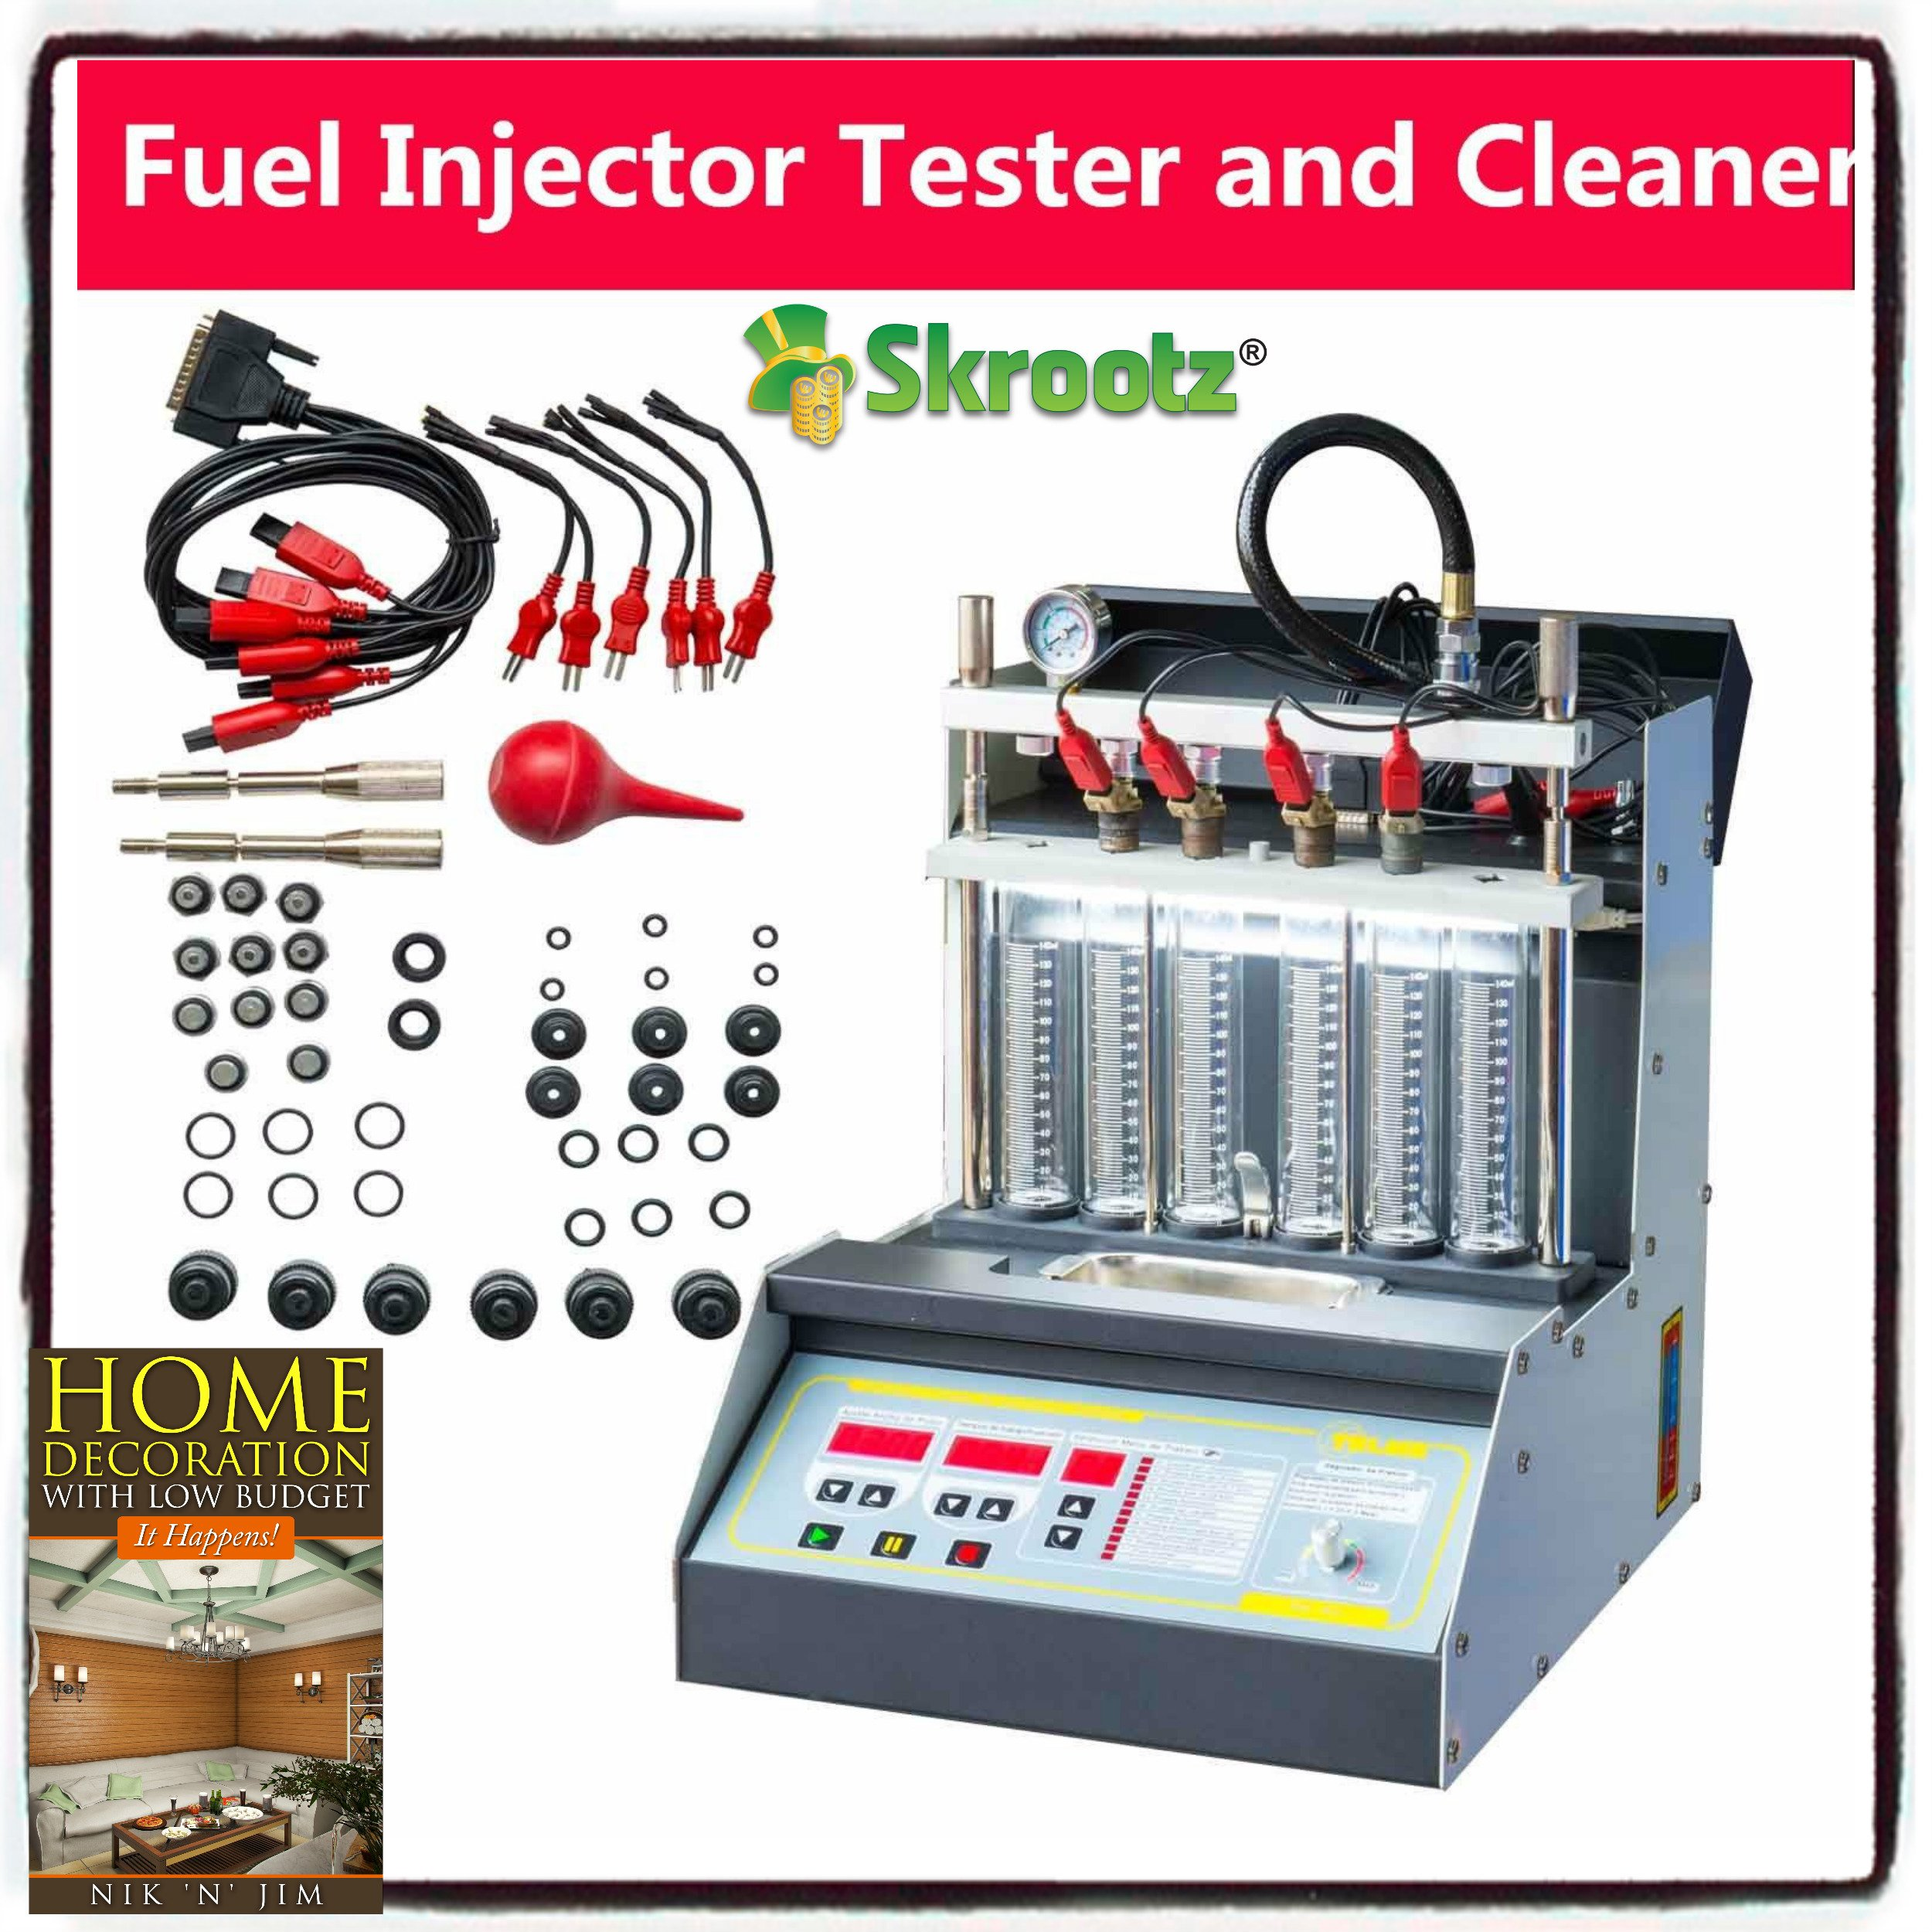 Car Motorcycle Injector Ultrasonic Cleaner Injection Tester by Skroutz